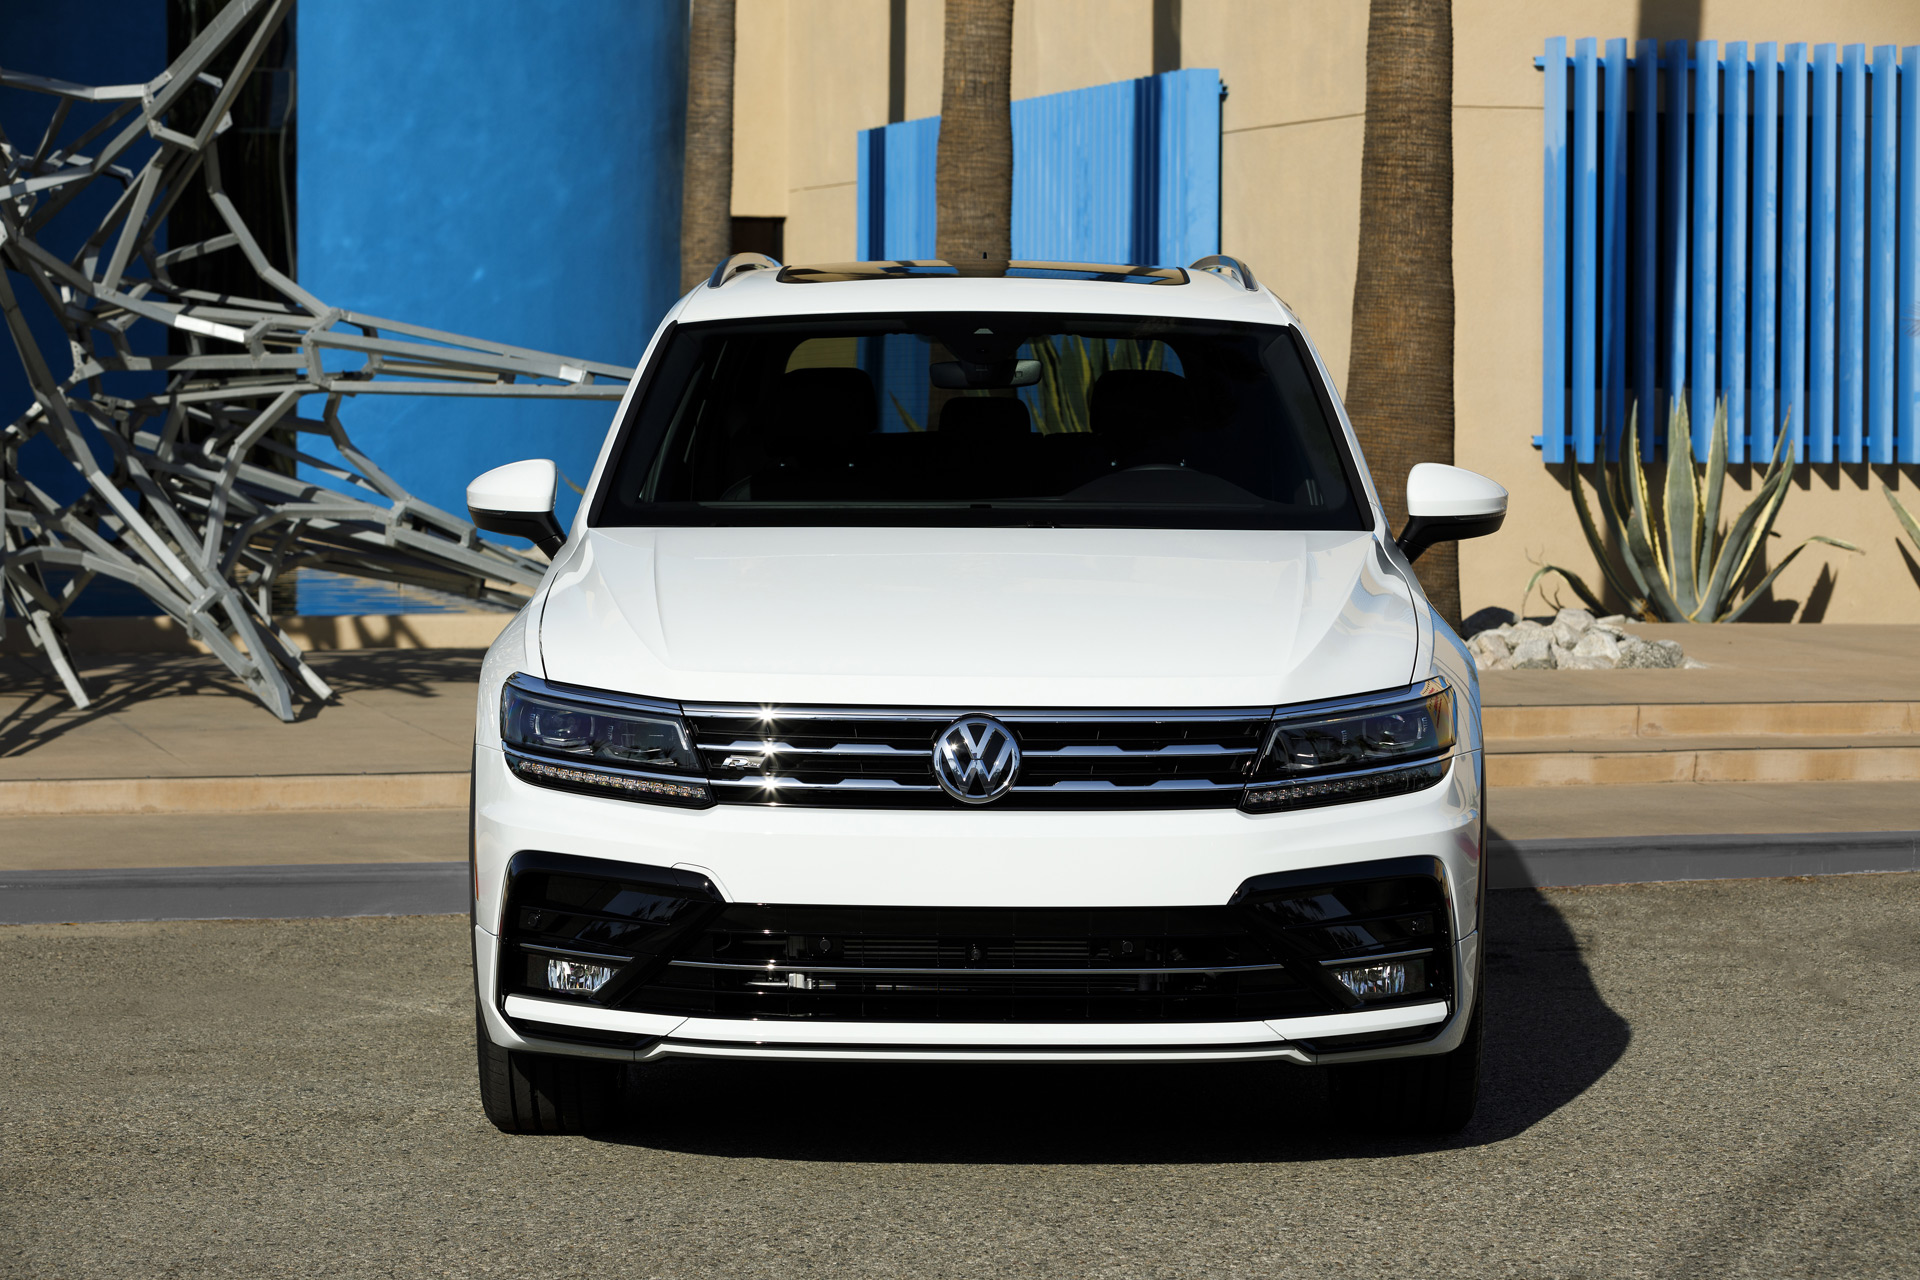 2018 volkswagen tiguan r line adds style and spice for a reasonable price. Black Bedroom Furniture Sets. Home Design Ideas